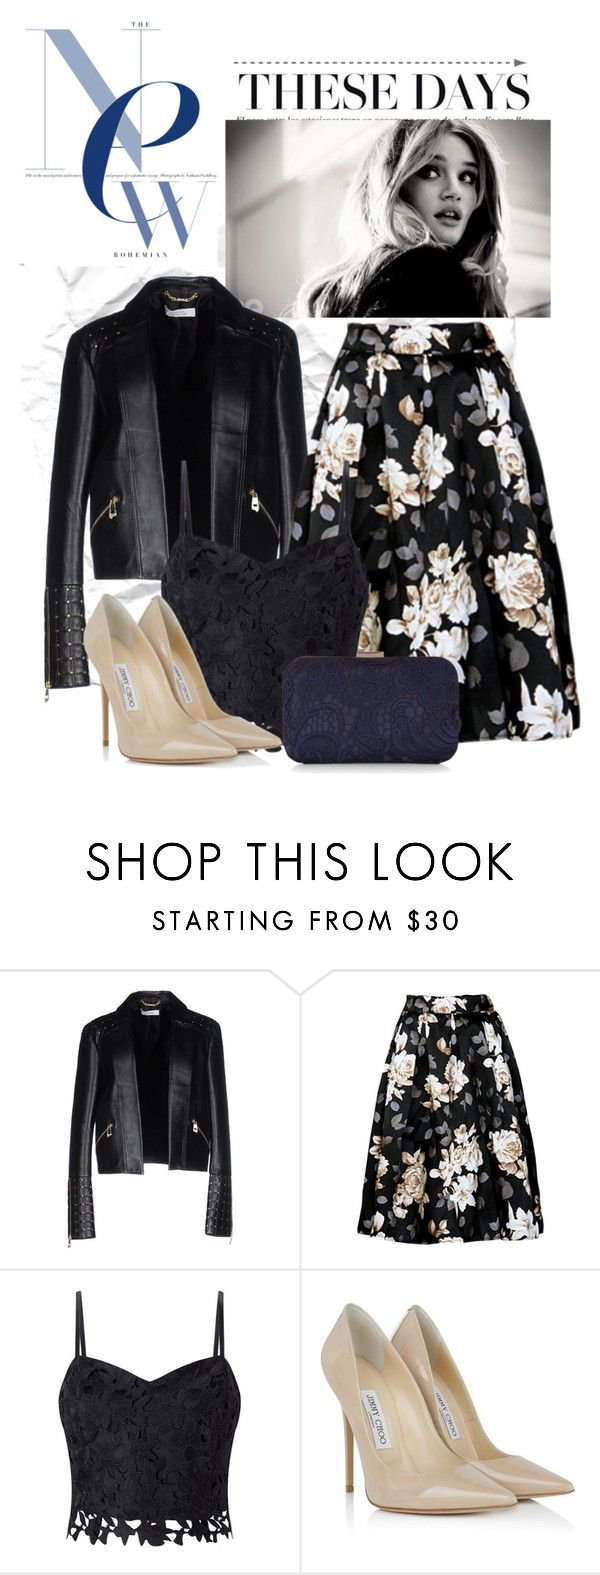 """Bralets"" by fran83 on Polyvore featuring moda, Versace, Lipsy, Jimmy Choo e Accessorize"